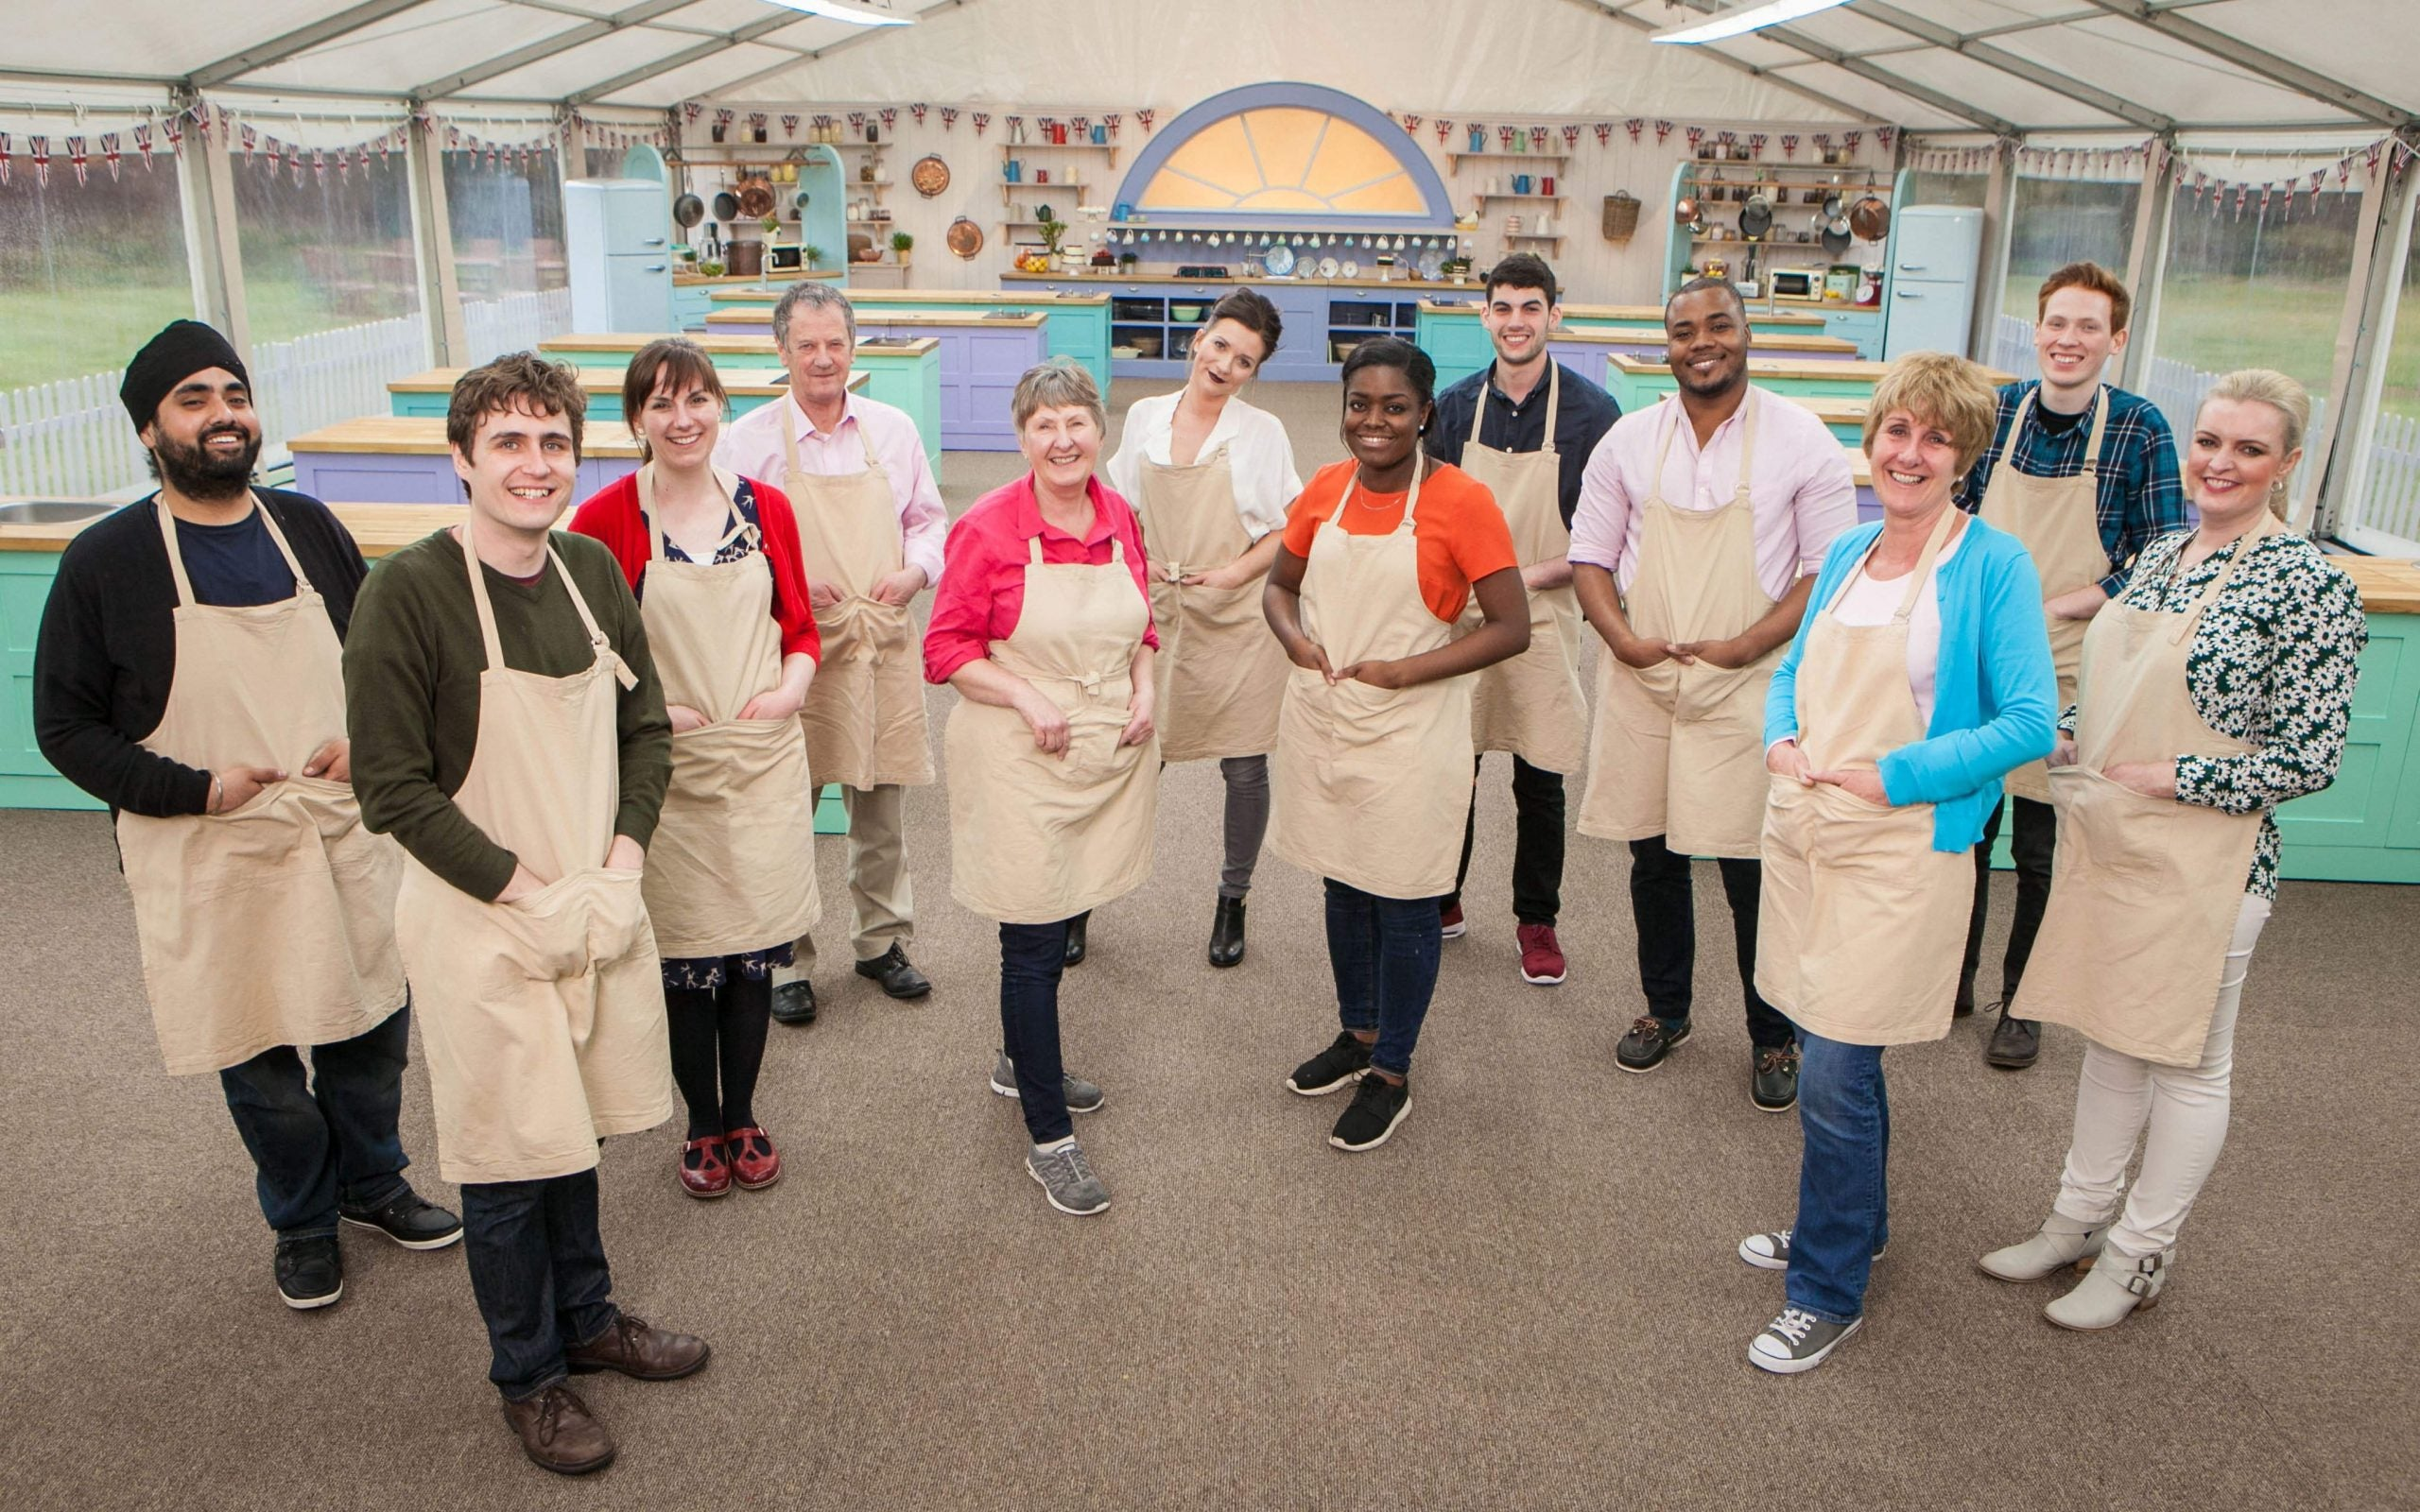 The Great British Bake Off: a life lesson in confidence and defeatism